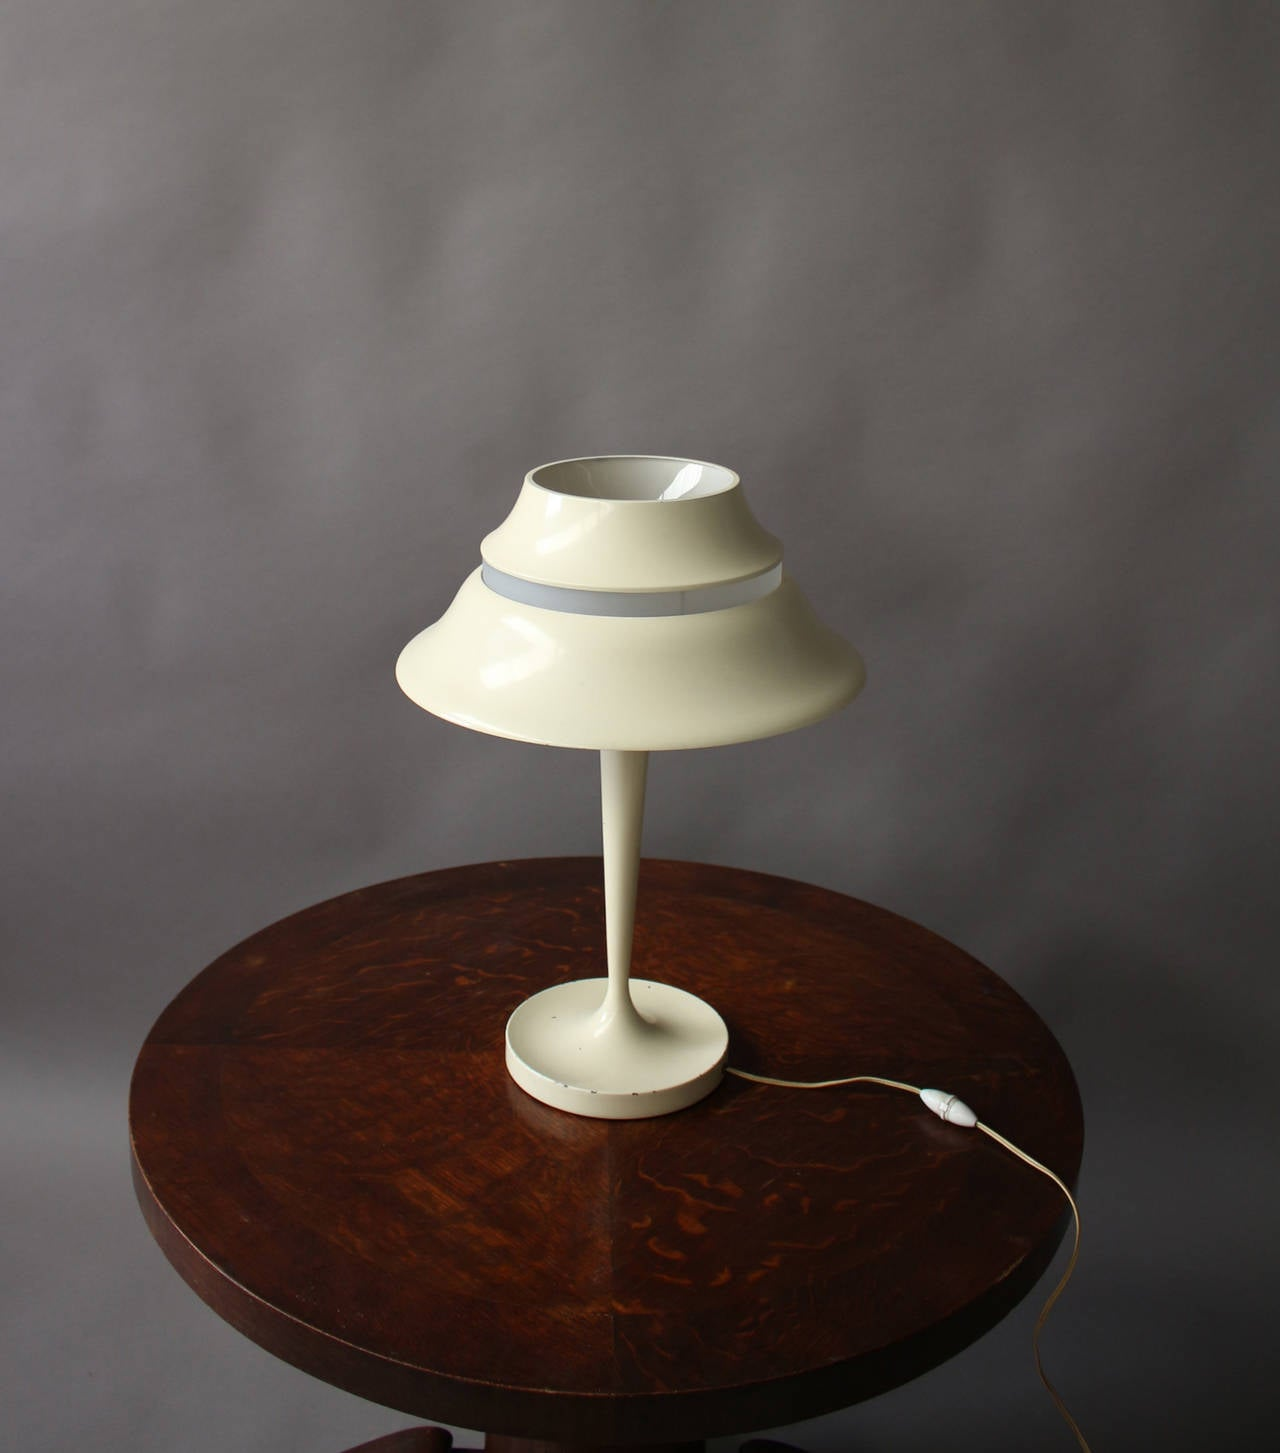 Lampe Perzel french art deco table lampjean perzel for sale at 1stdibs